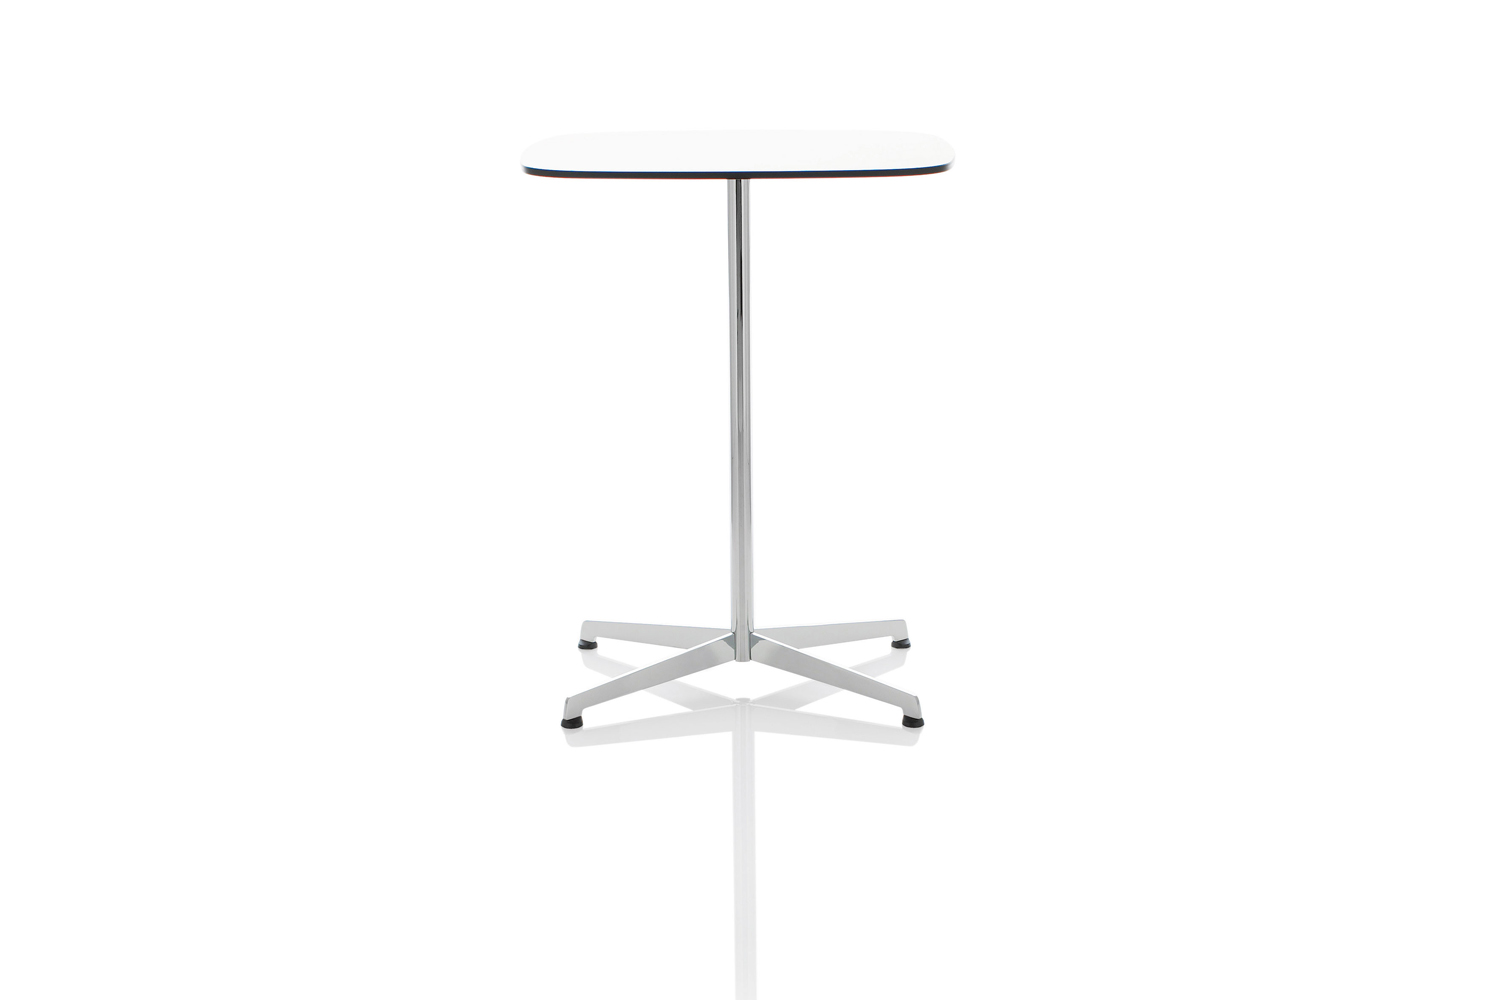 Lammhults Cooper table